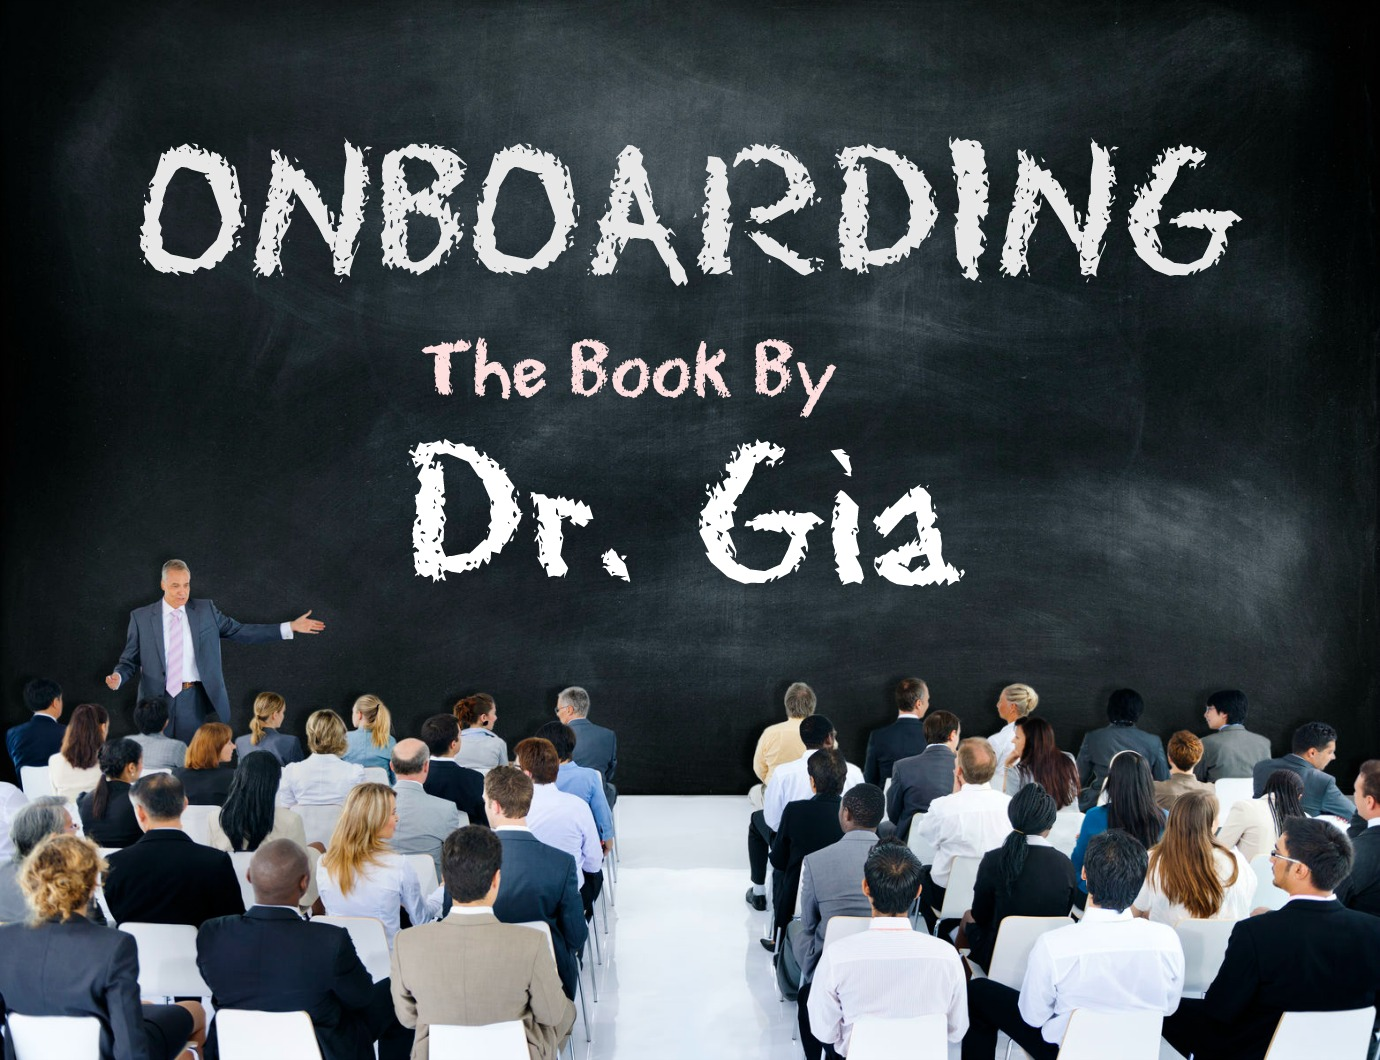 Dr. Gia Book Blackboard Resized